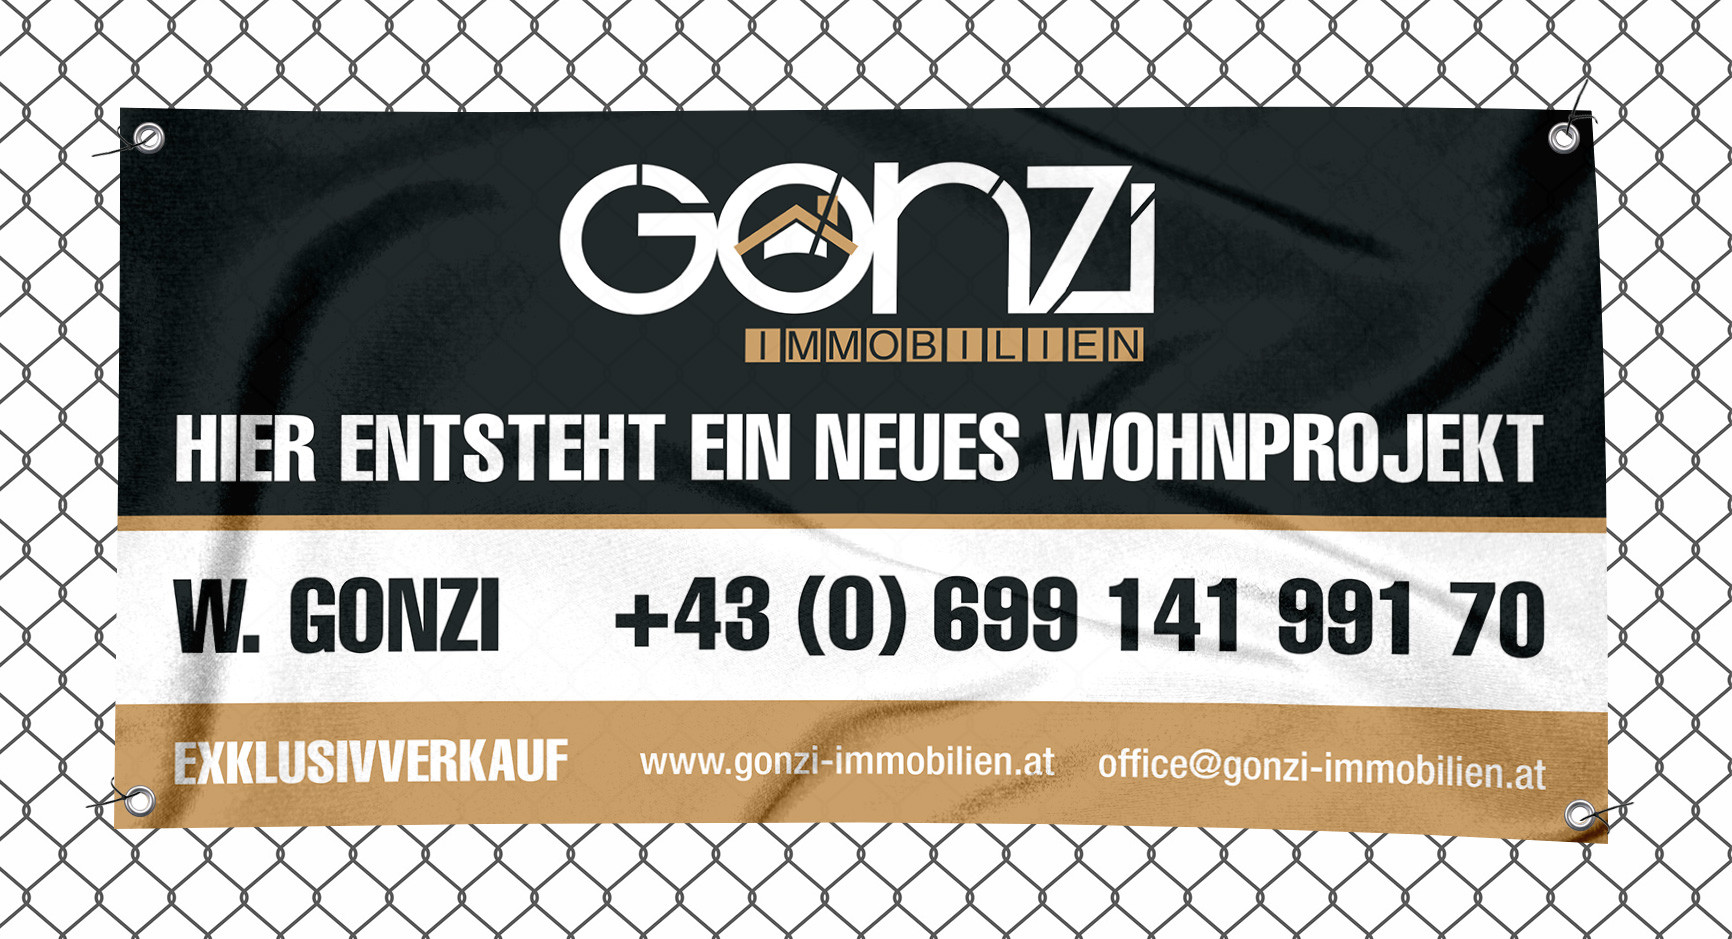 Plane Gonzi Immobilien – grafik.design Steinberger in Graz